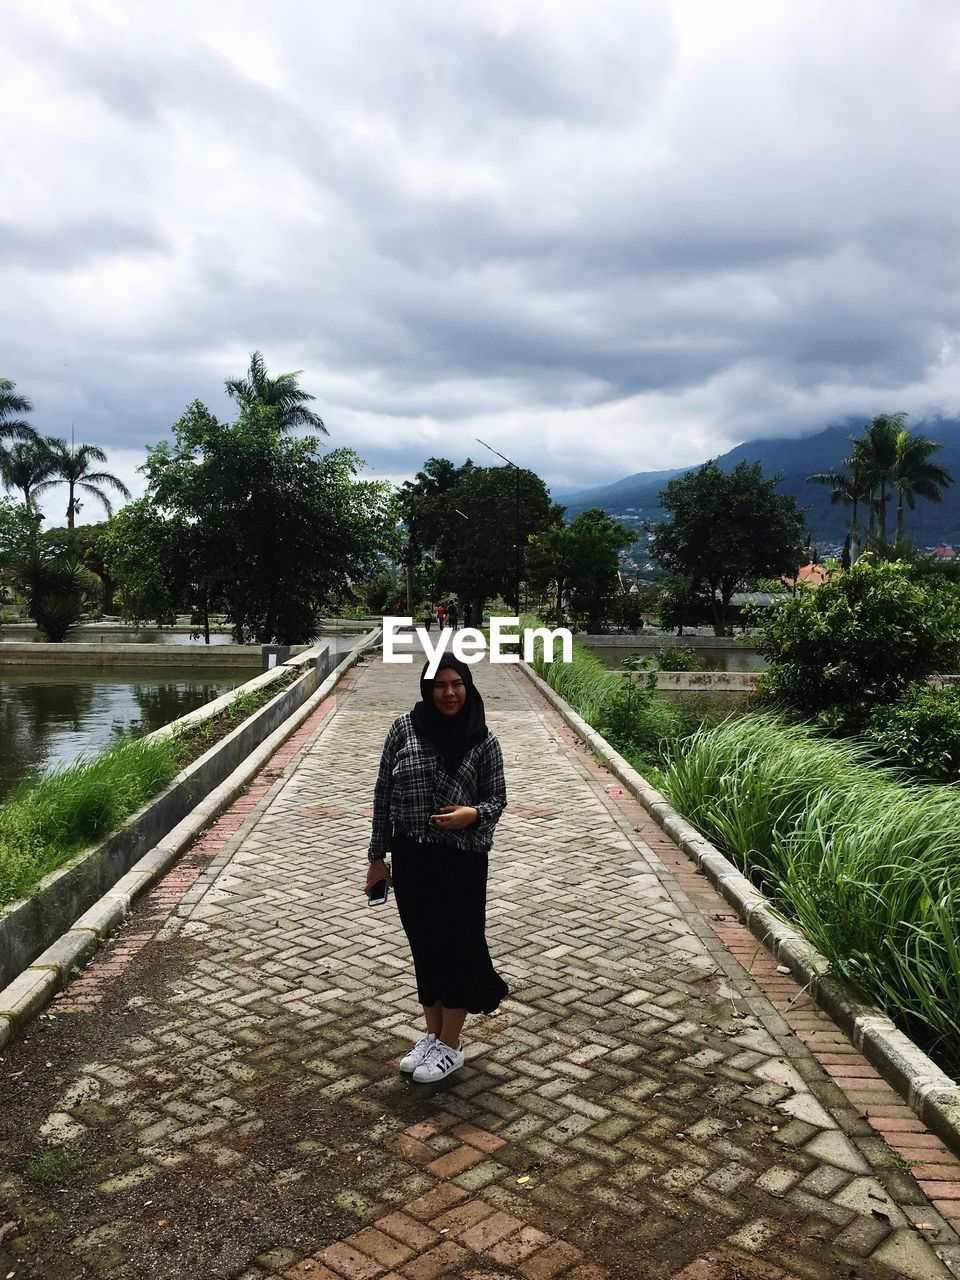 cloud - sky, sky, full length, one person, plant, tree, real people, nature, rear view, direction, the way forward, casual clothing, transportation, lifestyles, leisure activity, day, footpath, standing, diminishing perspective, outdoors